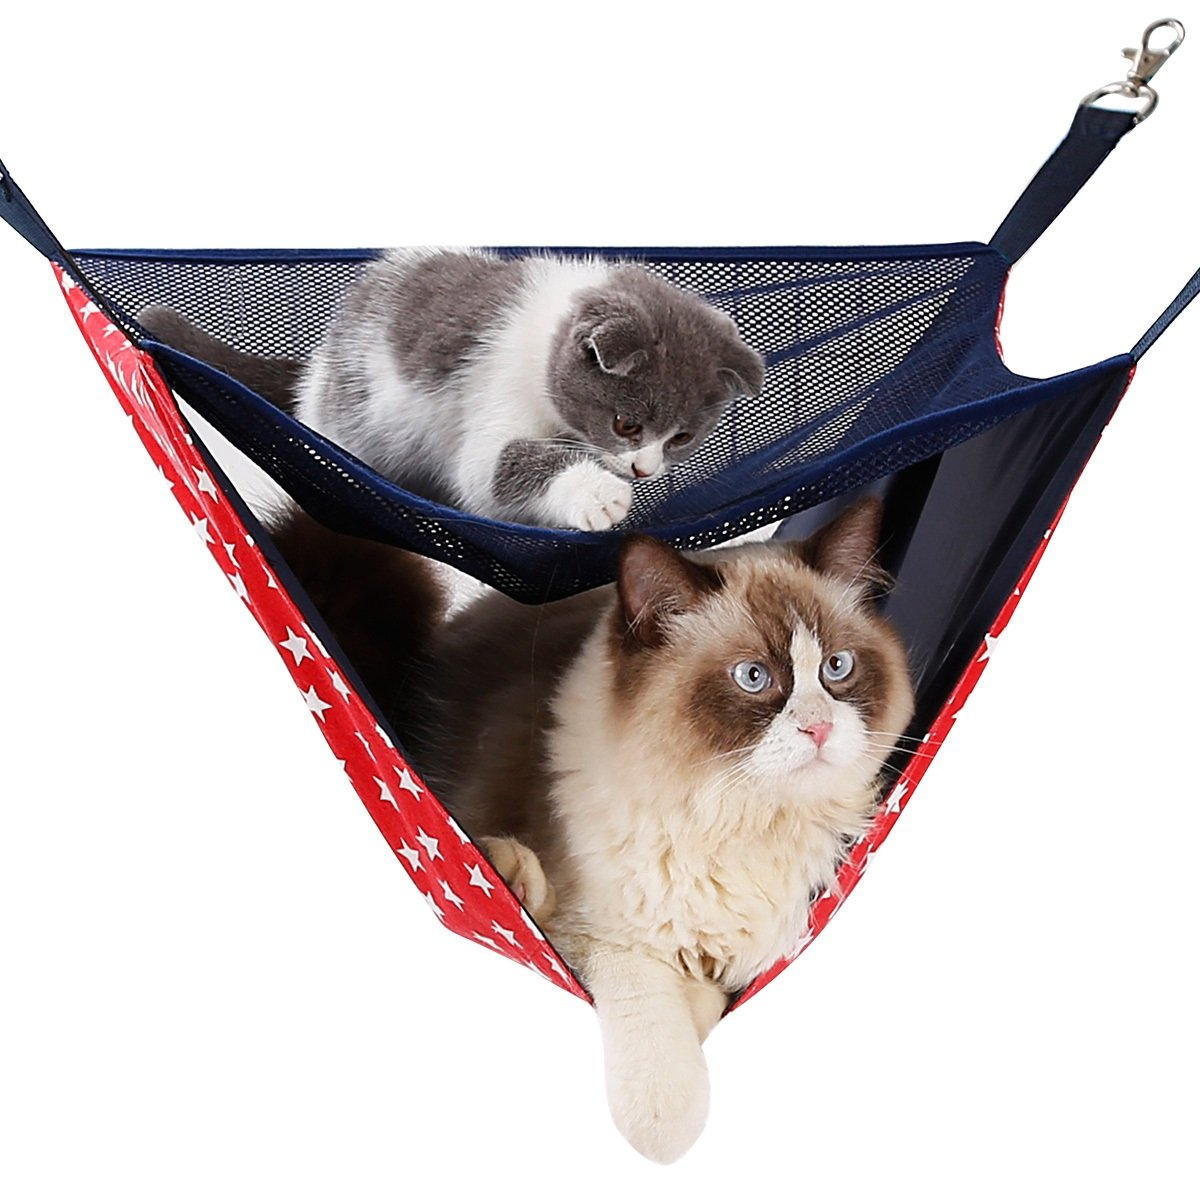 Albabara Cat Hammocks Bed Soft Sleepy Pad, Small Pet Hammock for Kitten, Ferret,Bunny, Rabbit, Rat Hammock Comfortable Pet Hanging Bed Double Layers Easy to Attach to a Cage, with Upgraded Version